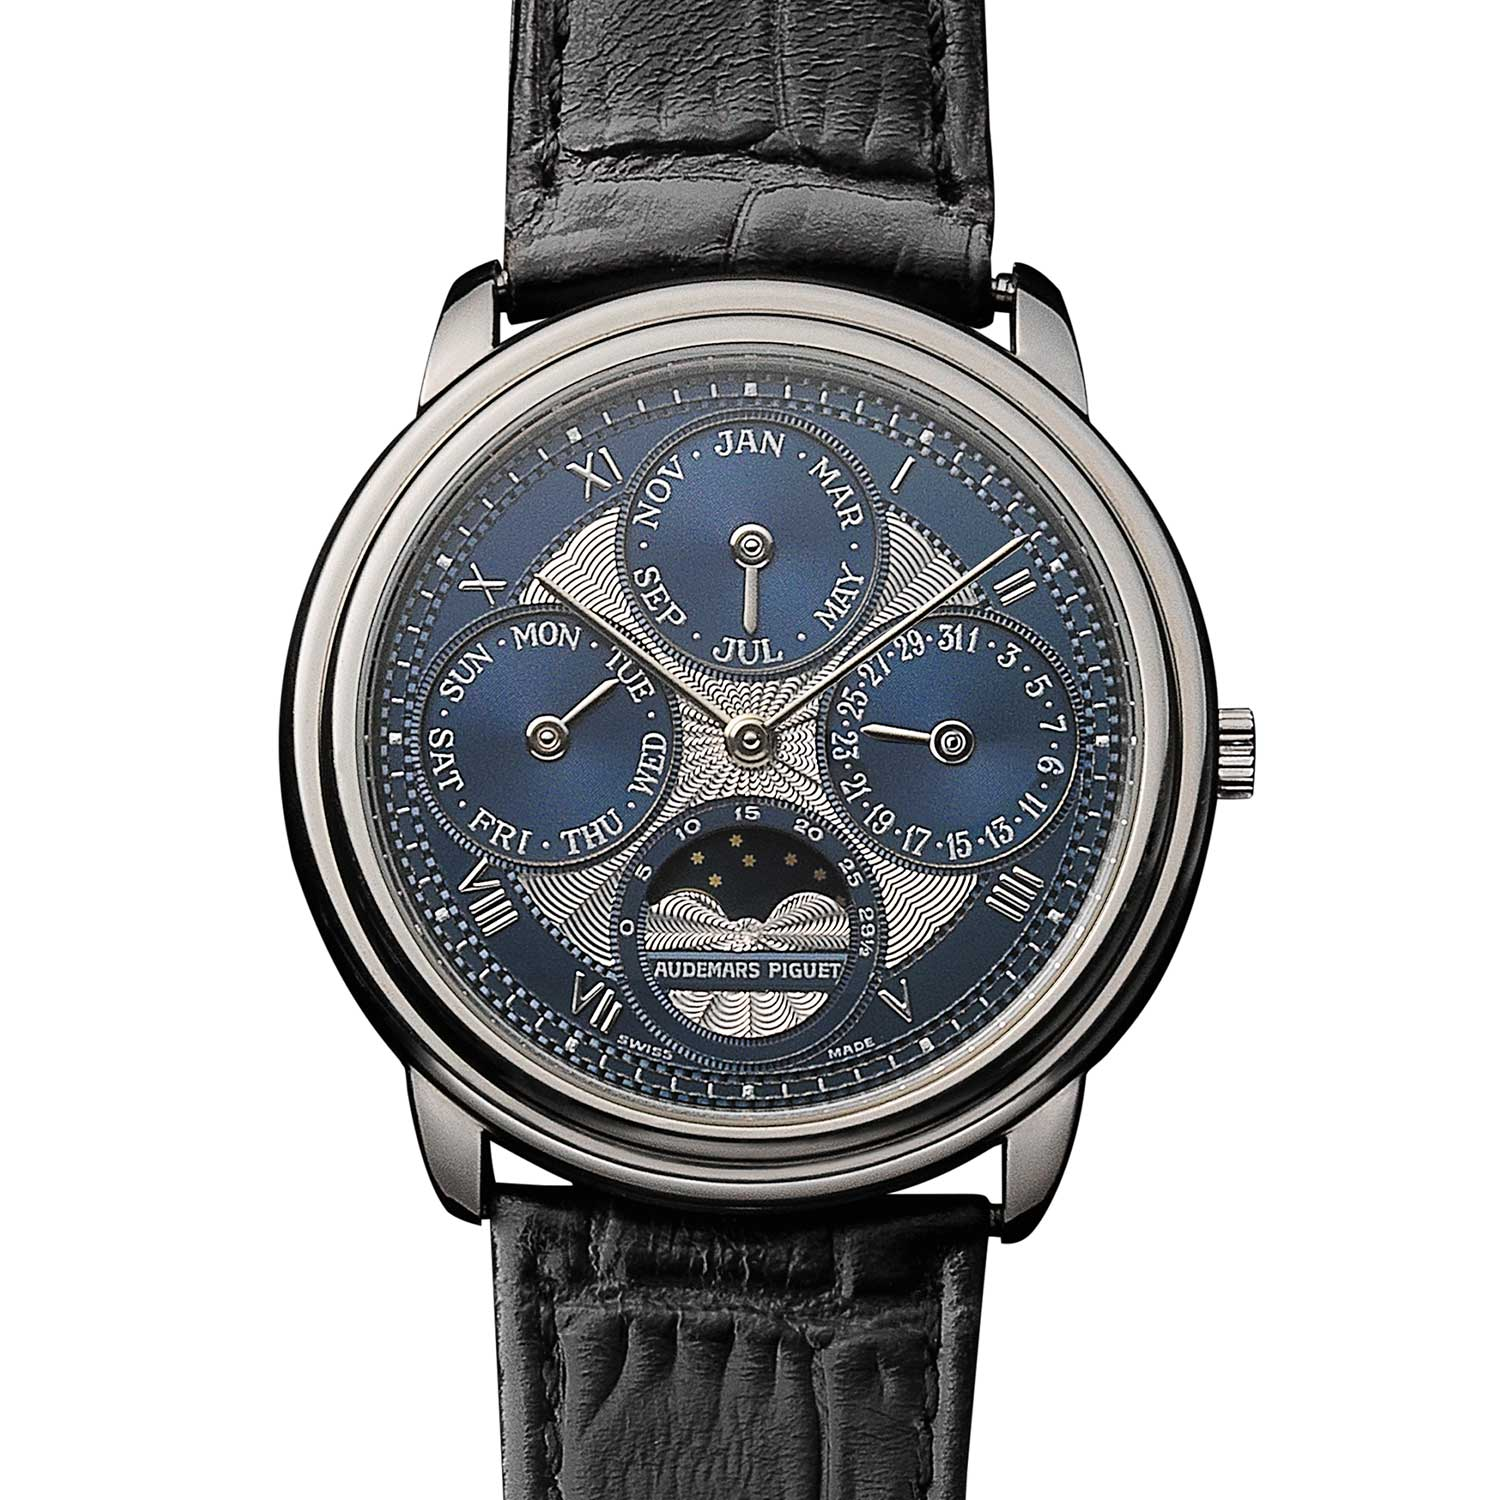 Perpetual calendar with an engine-turned dial. Model 25657PT (1,821 examples of which 128 in platinum). Movement No 373953, case No C97806. Calibre 2120/2800. Movement made in 1992, watch sold in 1993. Audemars Piguet Heritage Collection, Inv. 755.